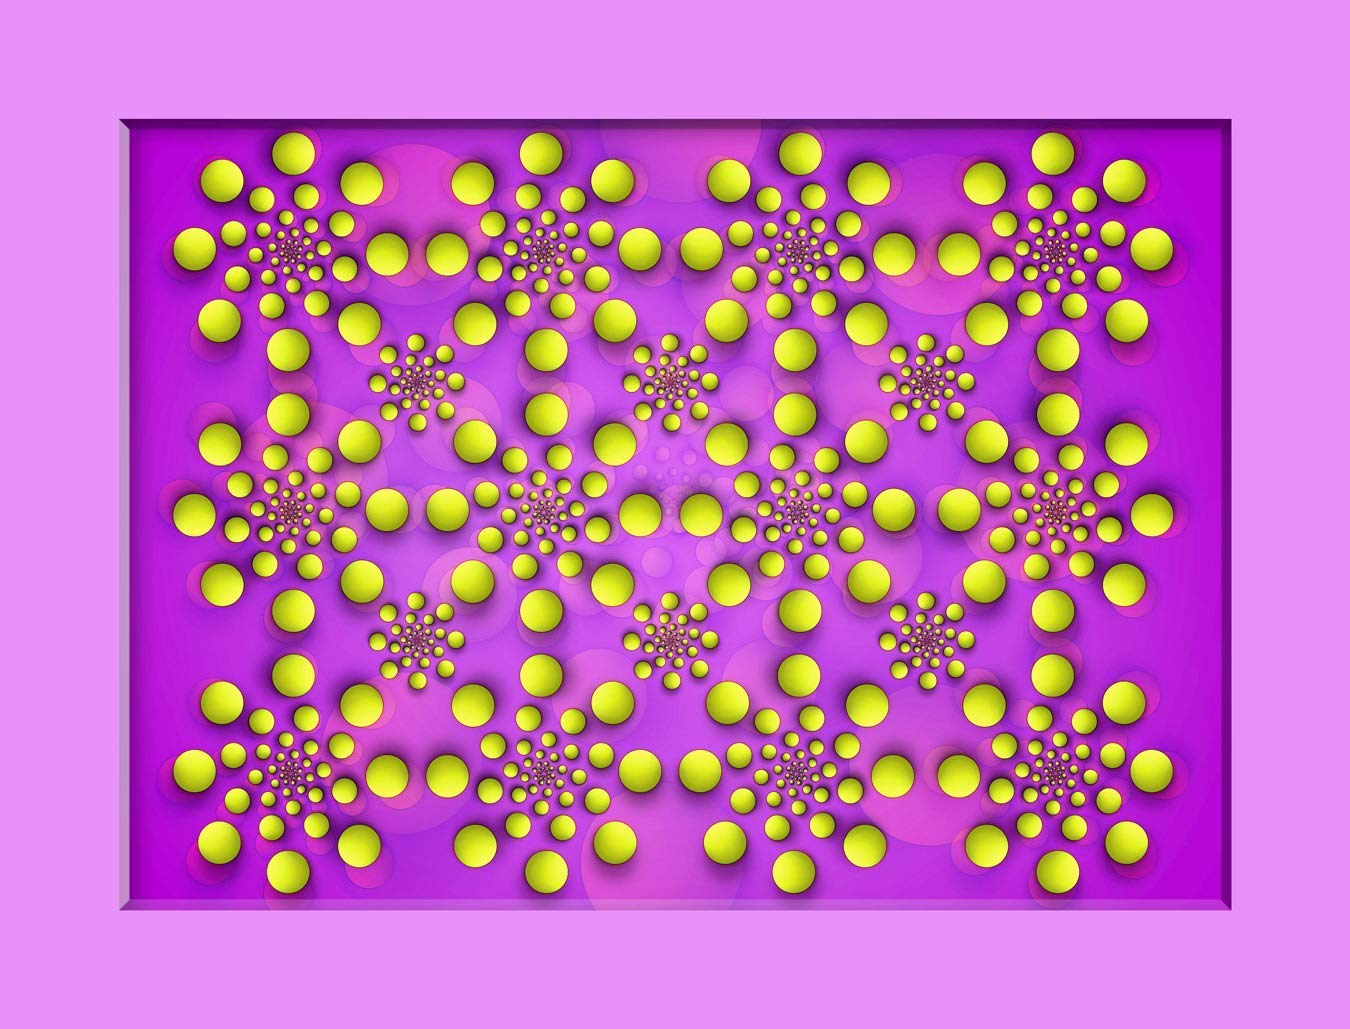 Optical Illusion :: Yellow Shapes Seams to be Moving. Laminated Poster